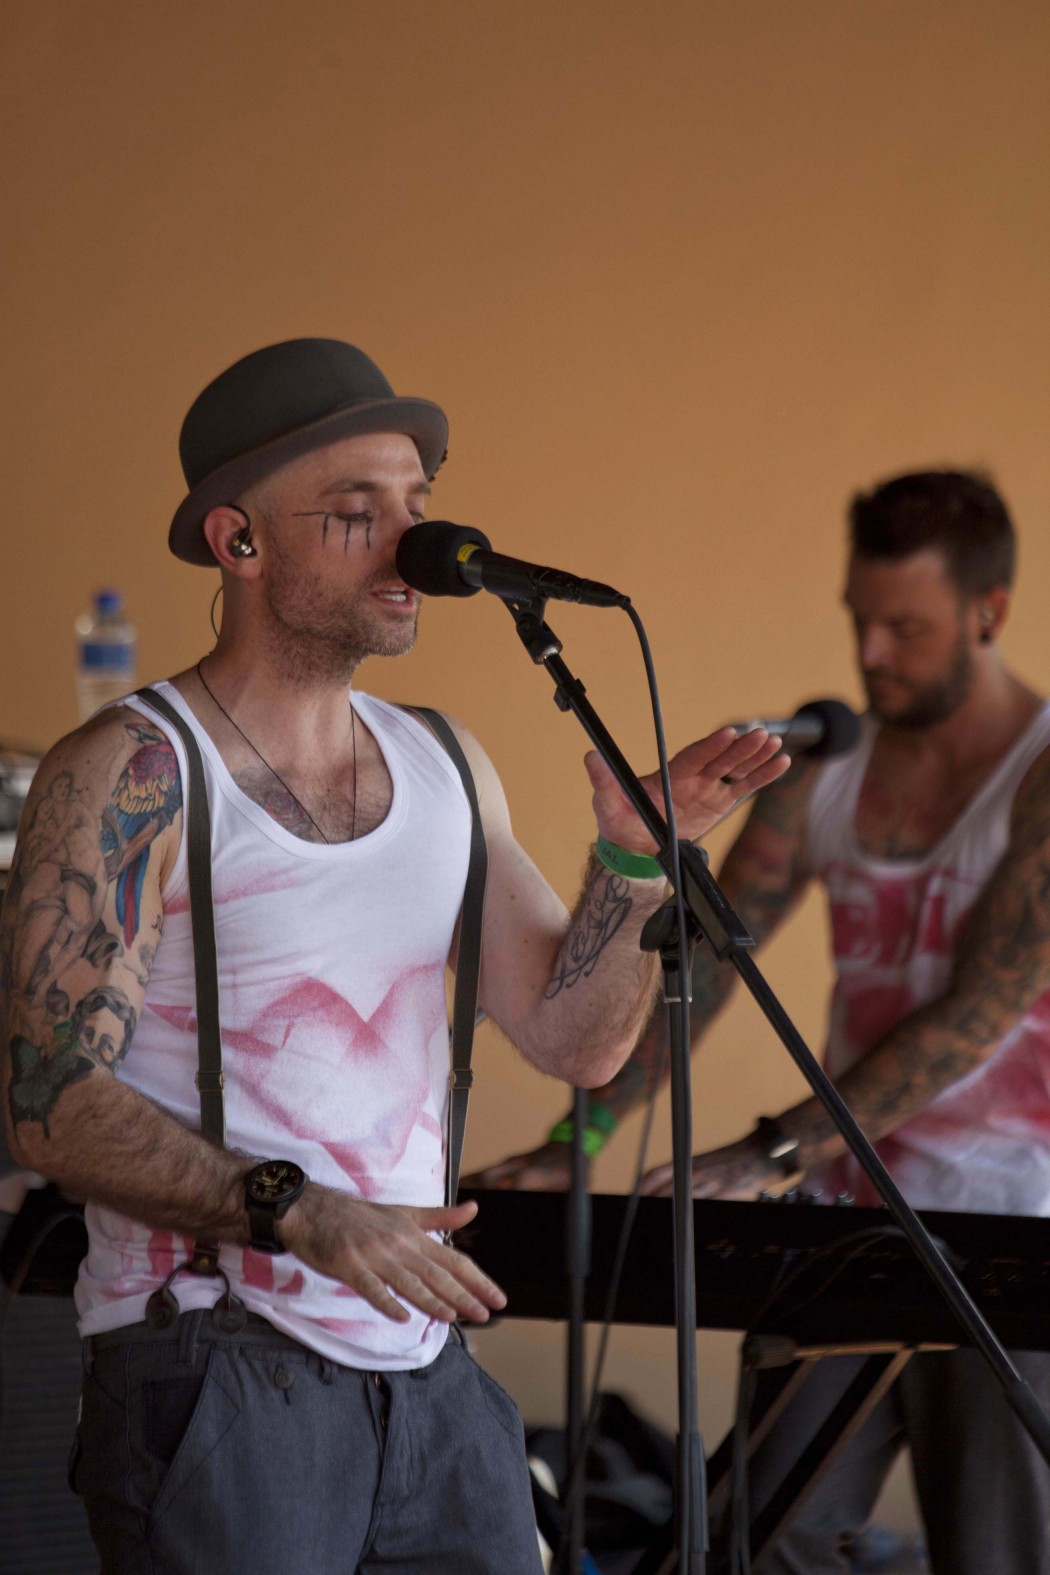 http://www.durbanite.co.za/wp-content/uploads/2016/03/The-Parlotones-1050x1575.jpg